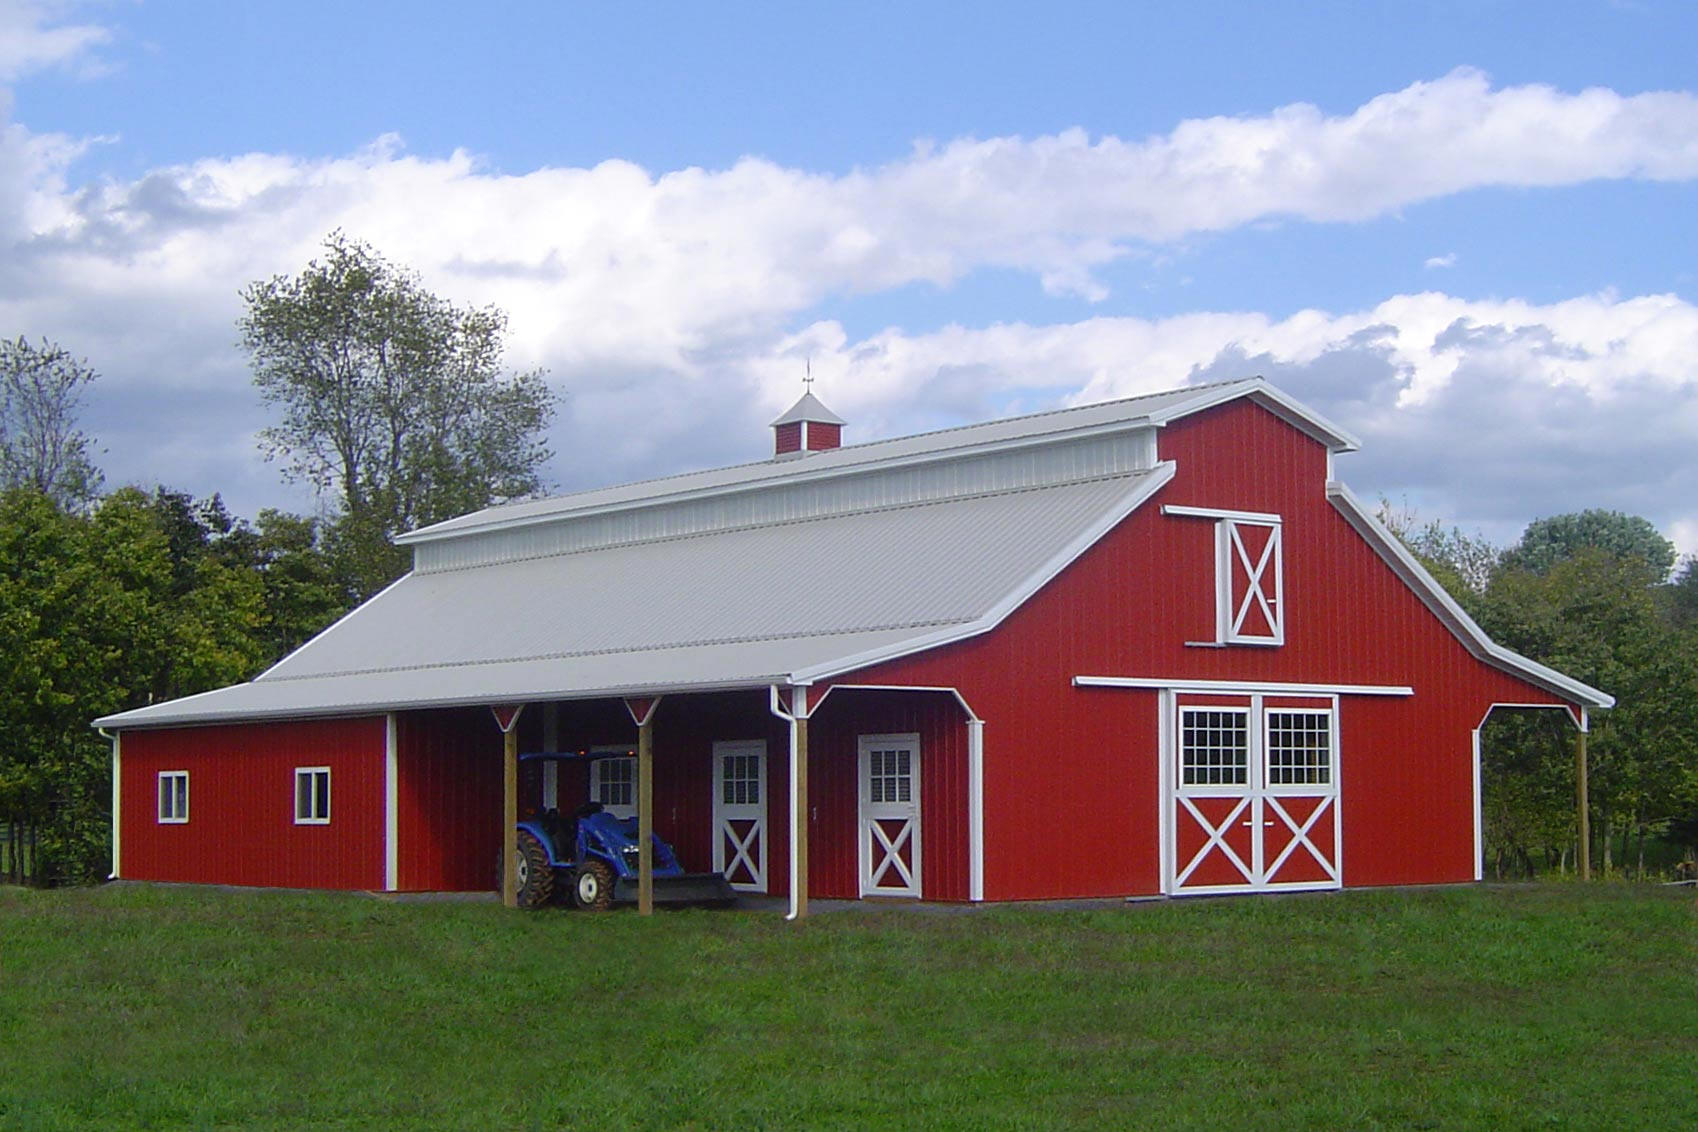 American barns for your horses cool shed deisgn for Barn designs for horses